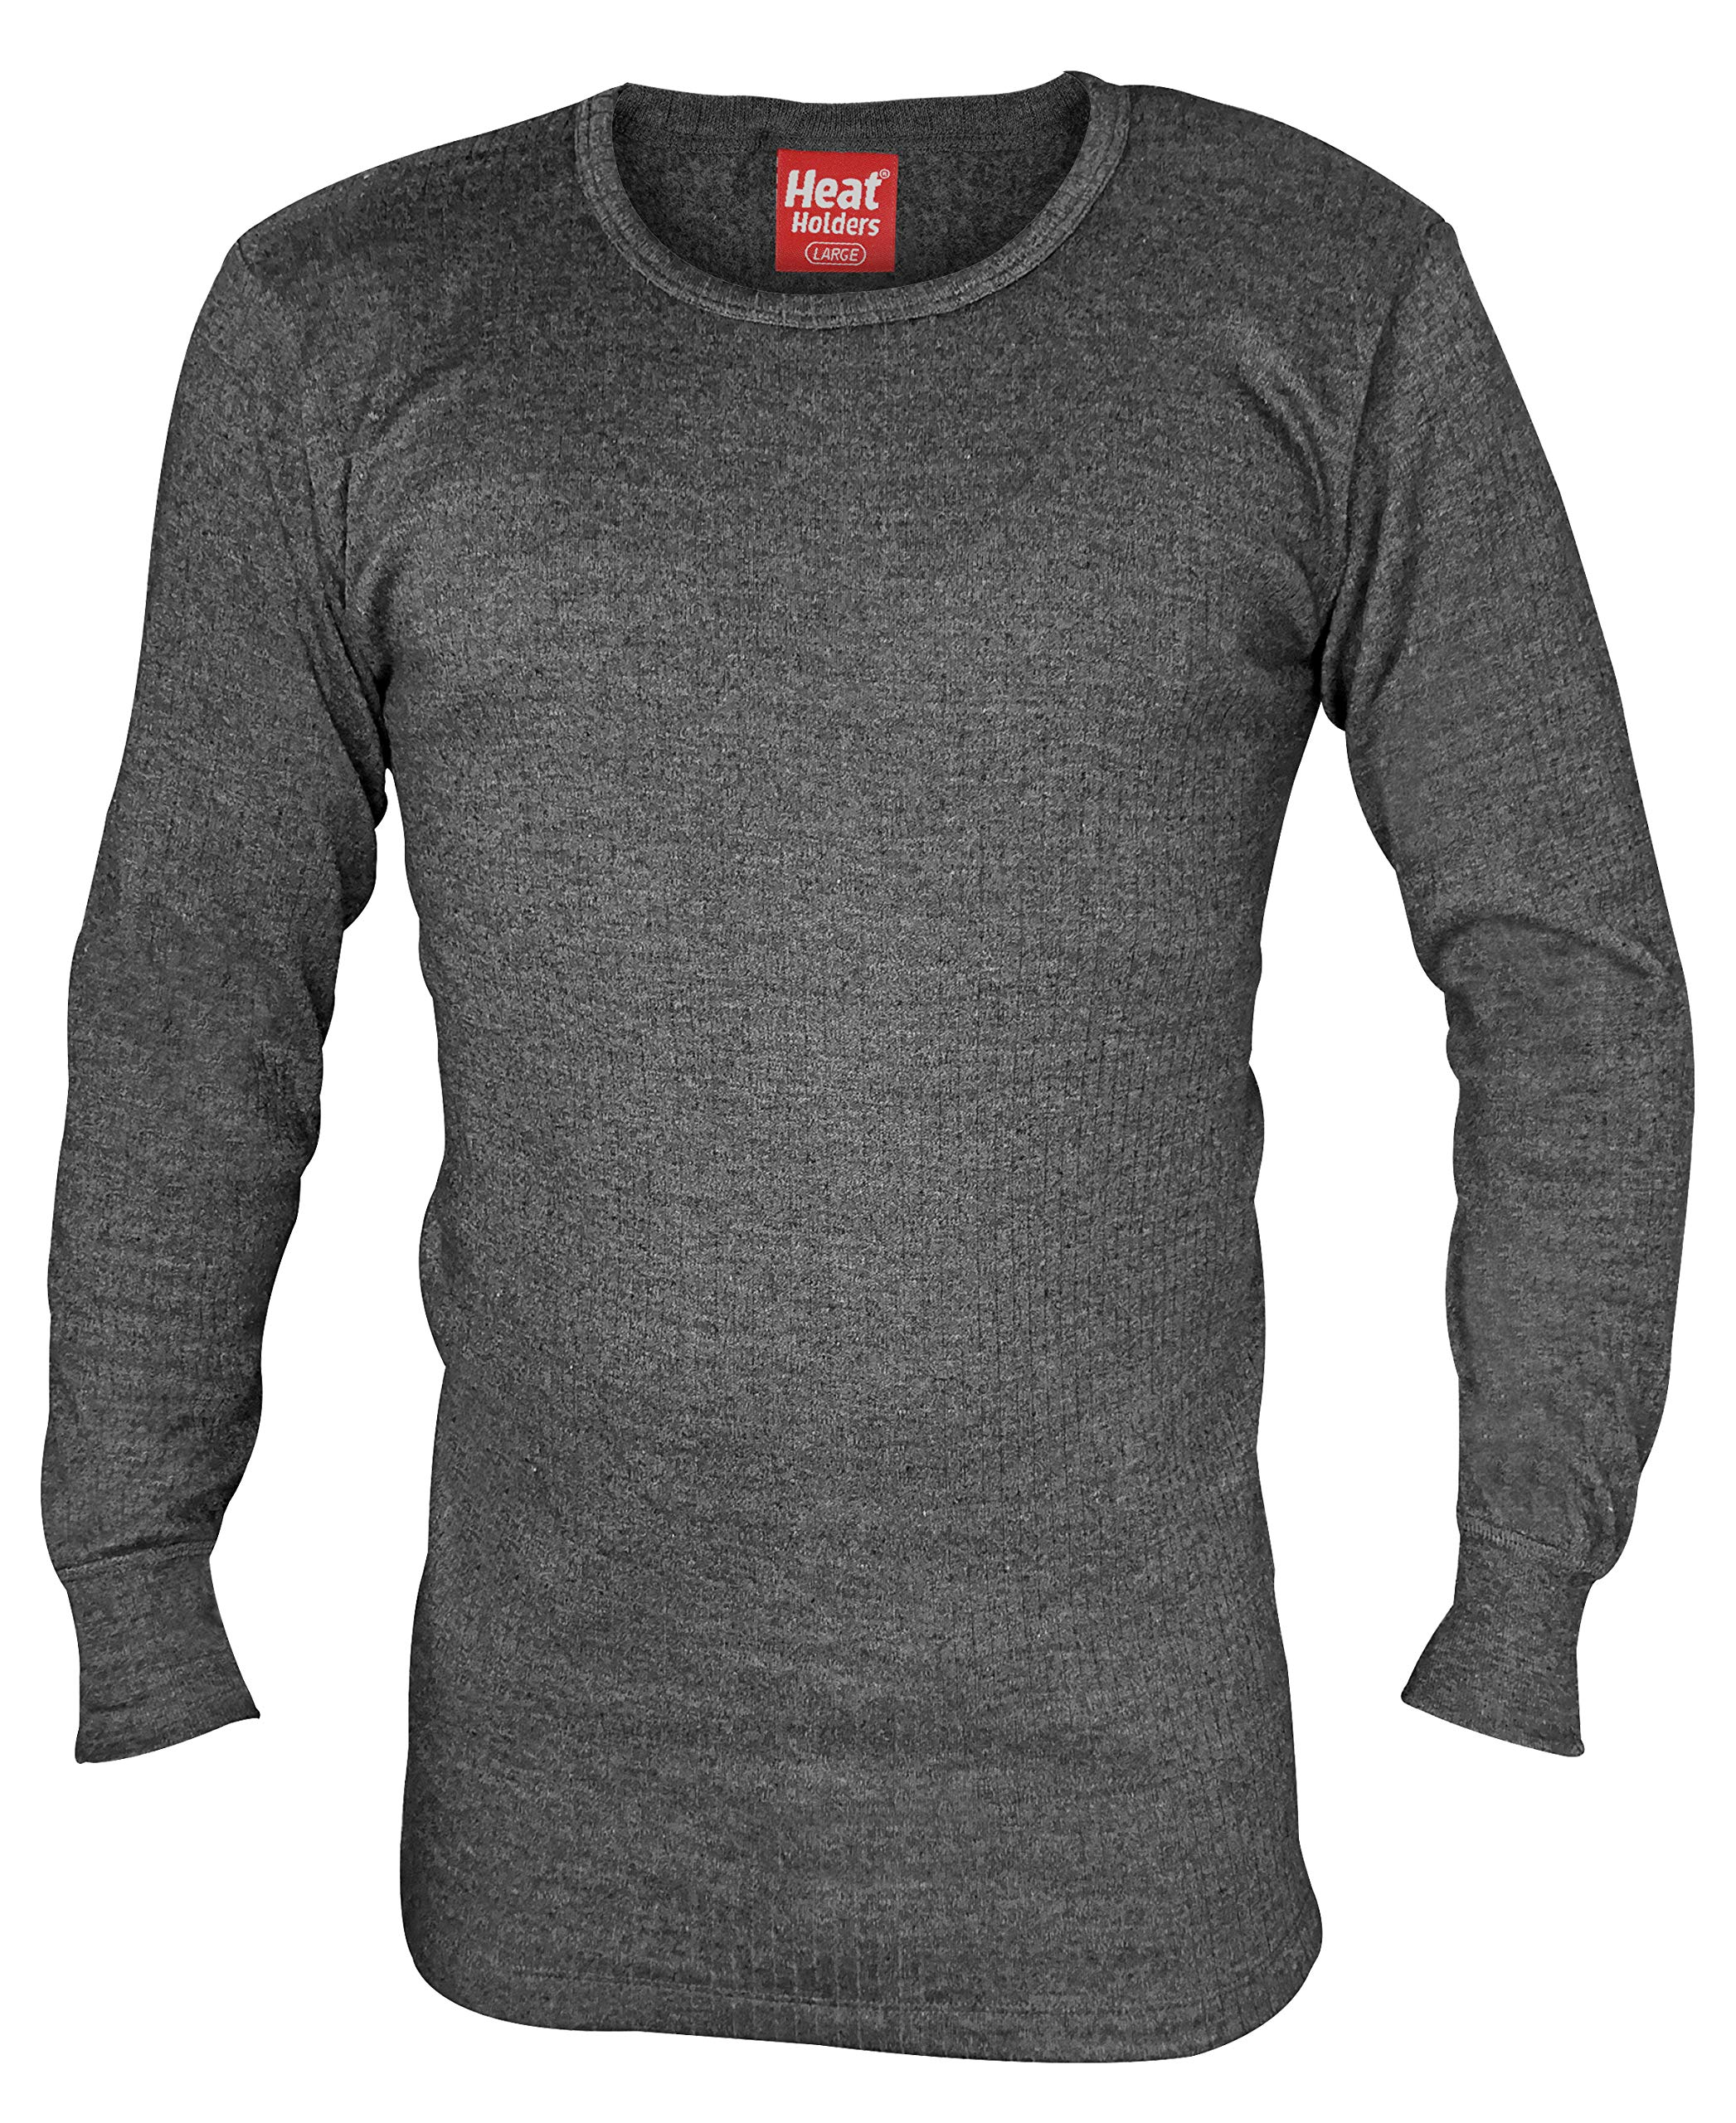 HEAT HOLDERS - Mens Winter Warm Thermal Underwear Long Sleeve Vest Top Shirt (Large: 41-43'' Chest, Charcoal) by HEAT HOLDERS